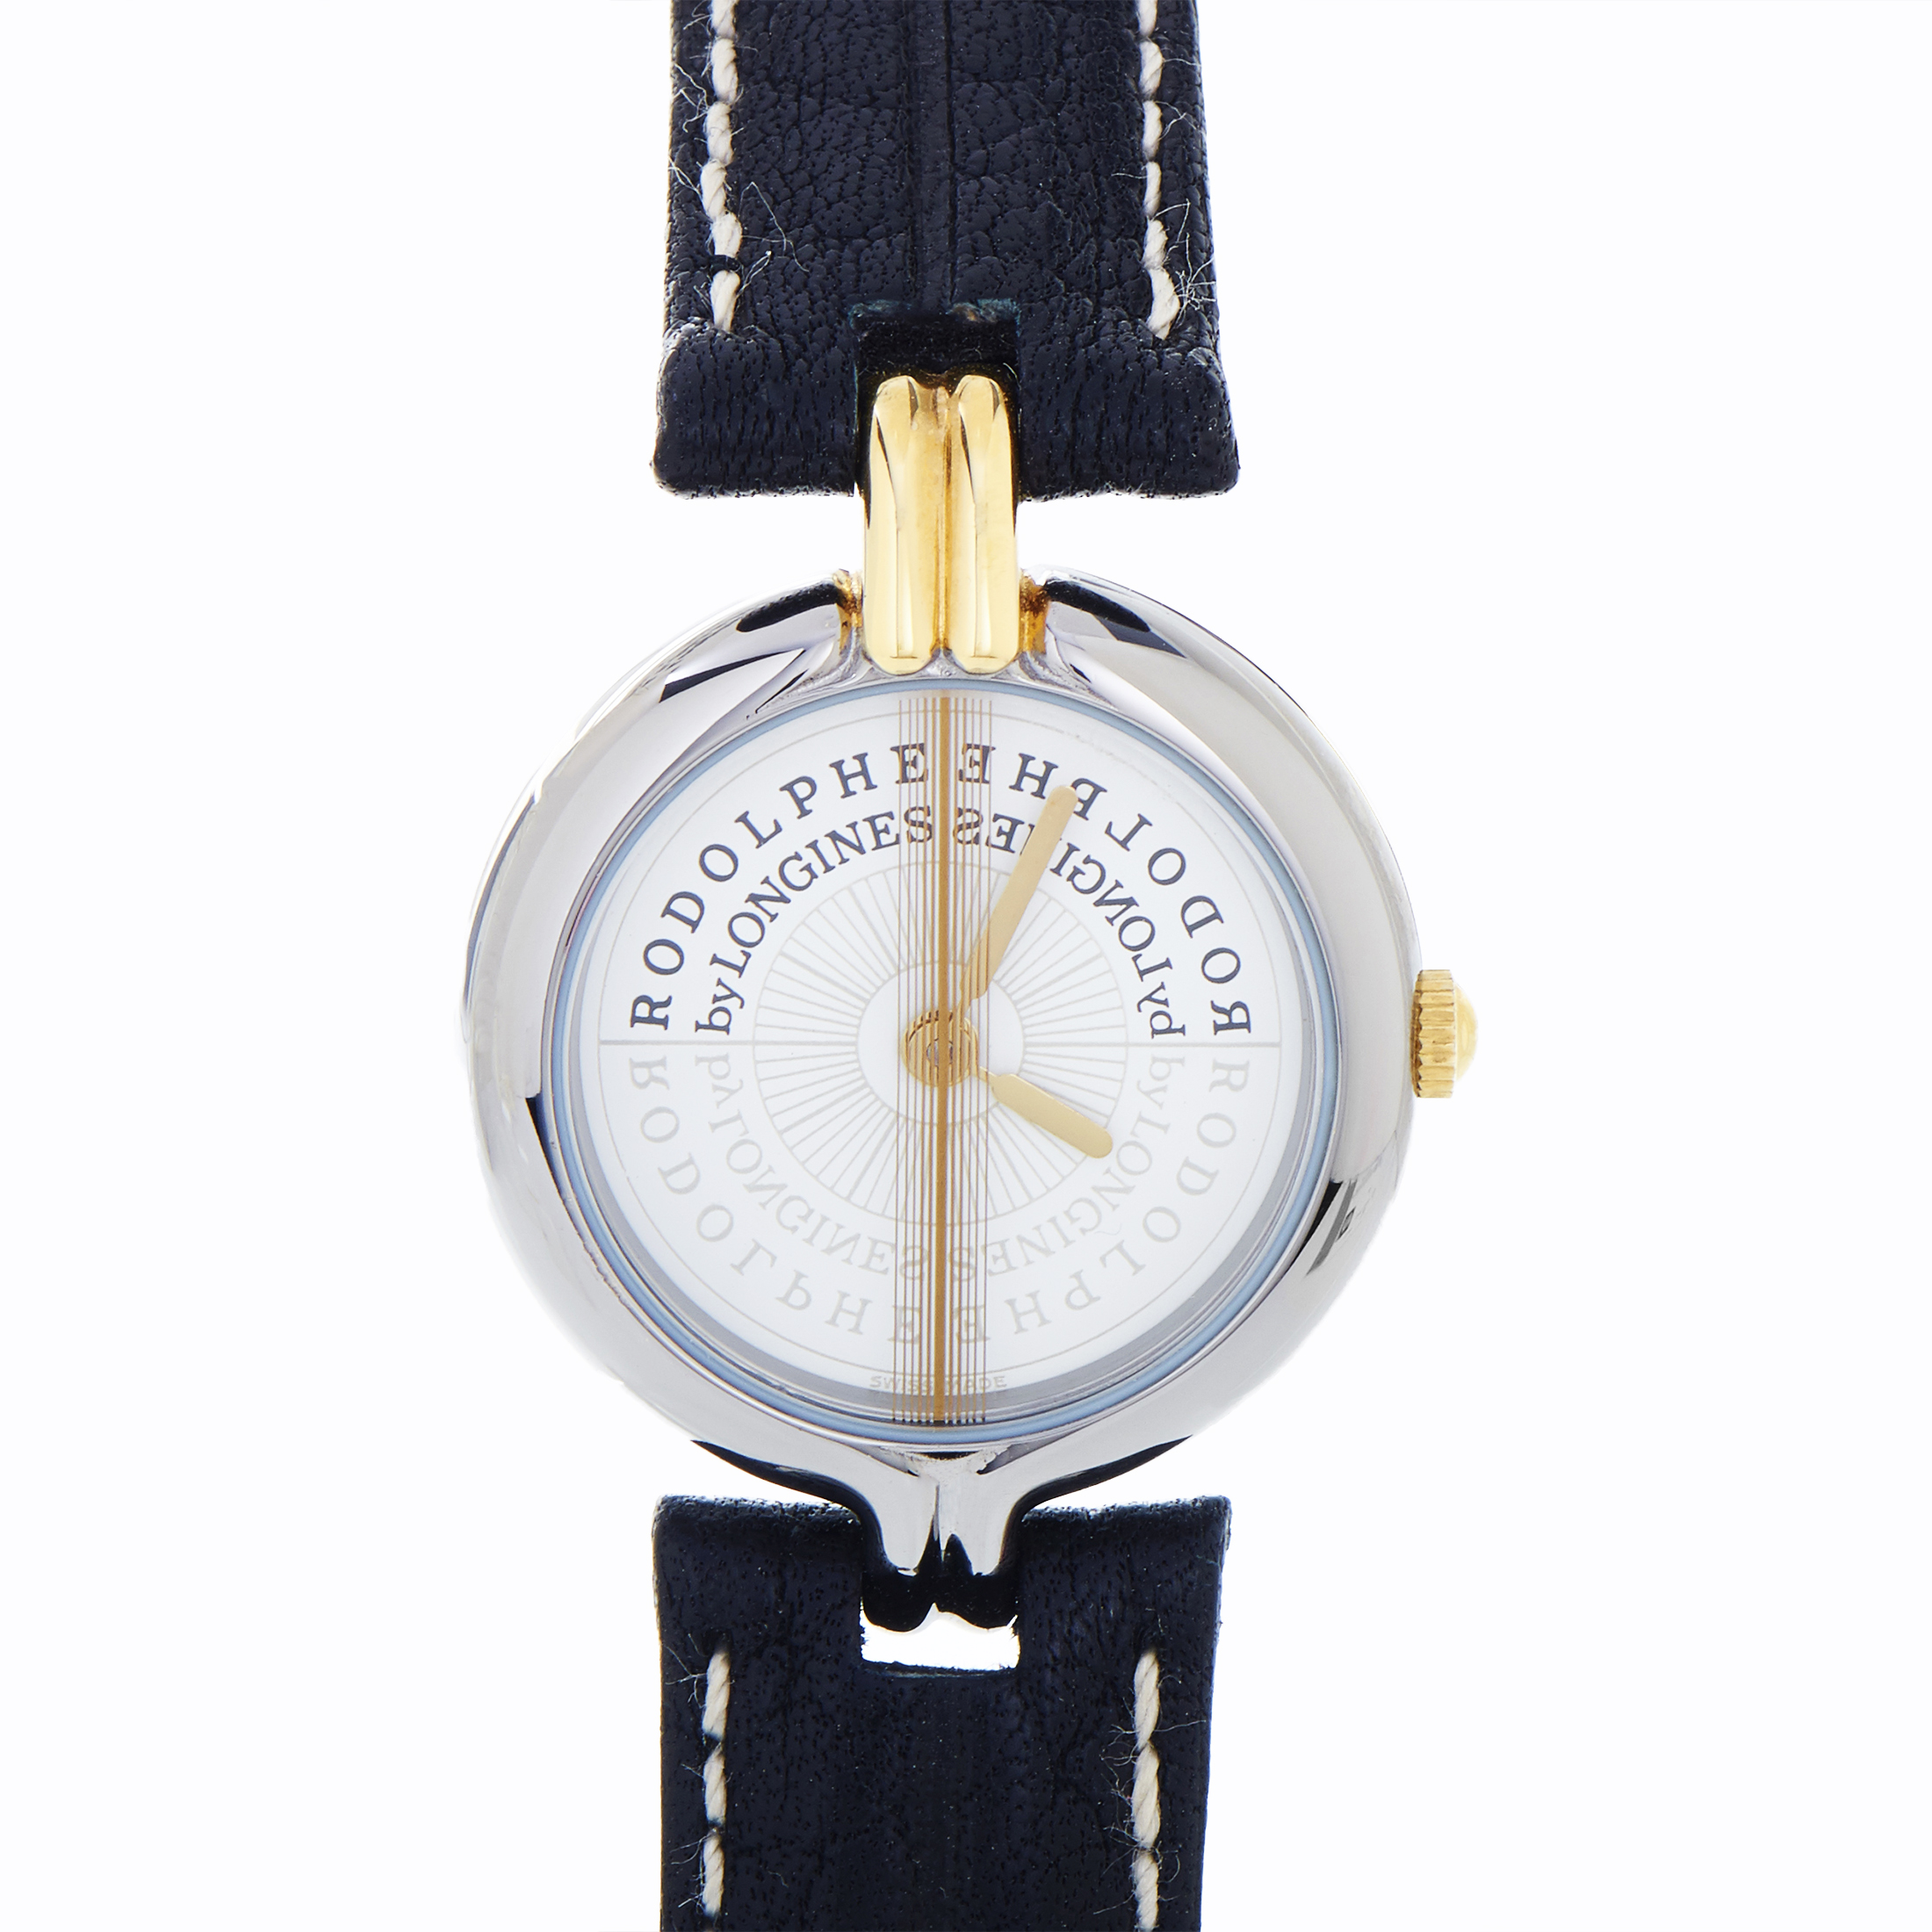 Rodolphe Women's Gold Plated Stainless Steel Quartz Watch L1.392.8.90.4